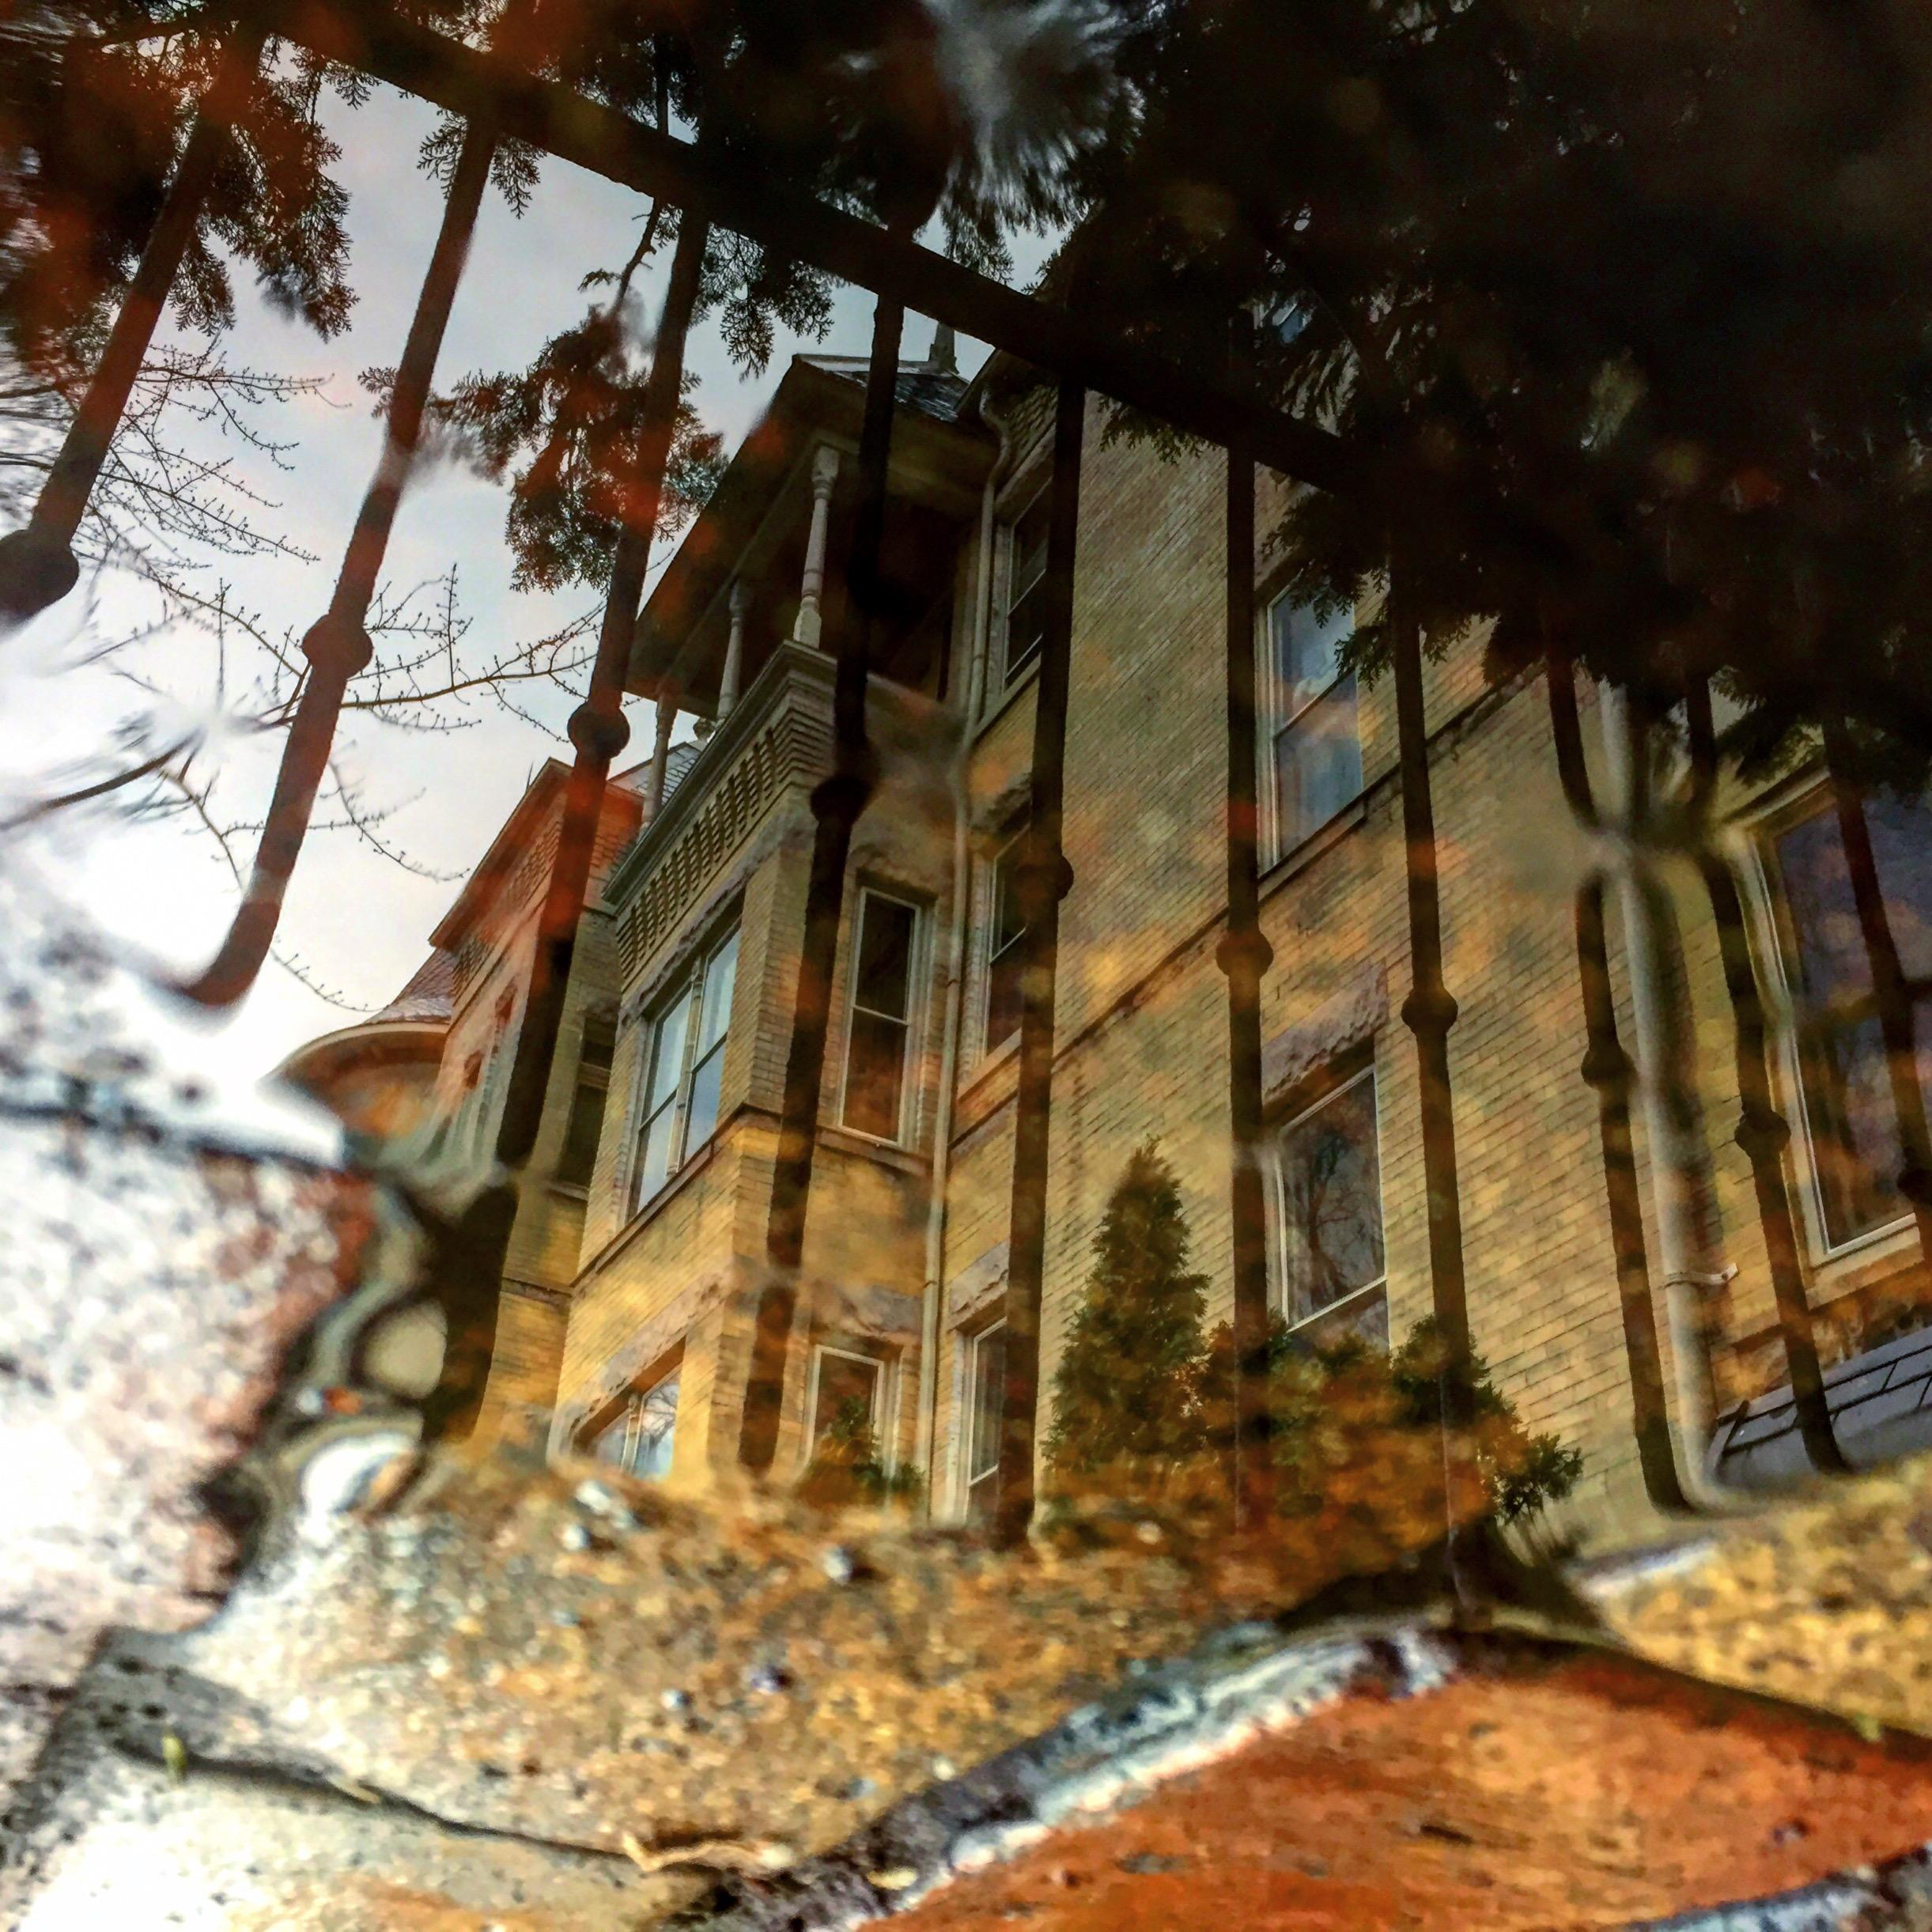 Post:{&amp;nbsp;}#puddle #reflection #capitolhilldc #thehillishome #washingtondc #igdc #acreativedc #bythingsdc #exposeddc #fotodc #madeindc #202creates #dctography #dcfocused #popville #dcisreal #notaswamp #puddlegram (Image: via IG user @monikerdc /{&amp;nbsp;}instagram.com/monikerdc/){&amp;nbsp;}<p></p>